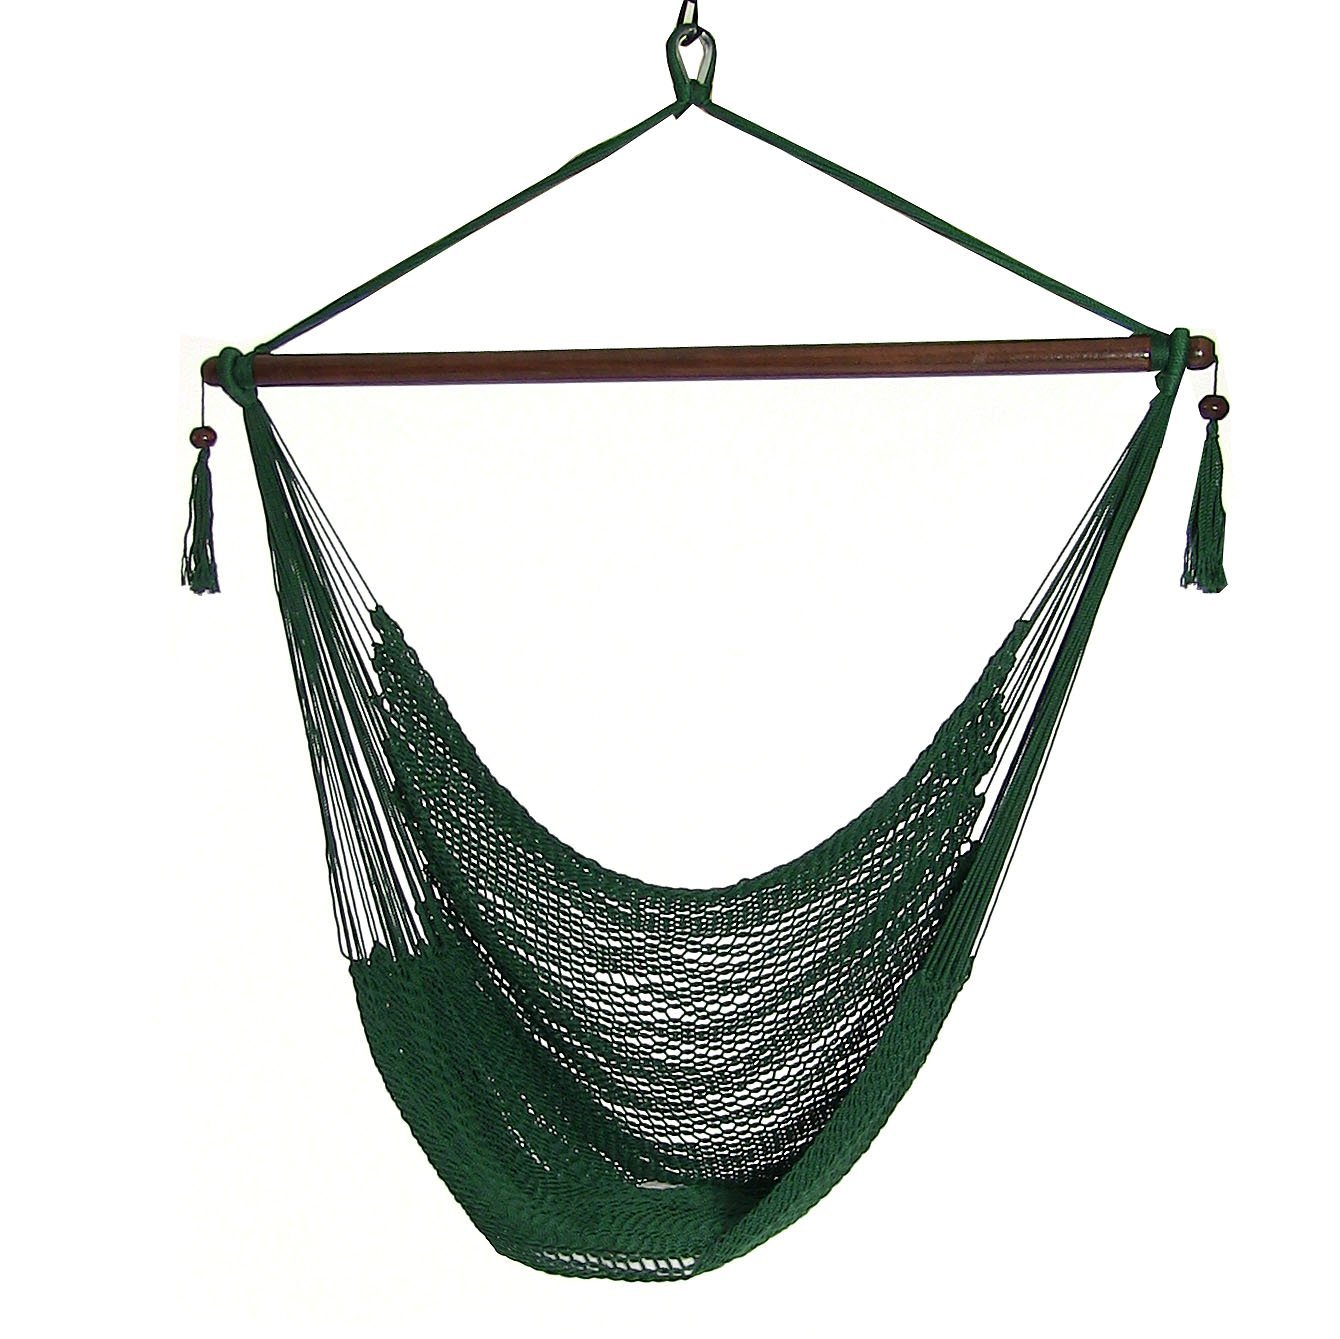 Details About Sunnydaze Soft Polyester Extra Large Hanging Caribbean Hammock Chair Green